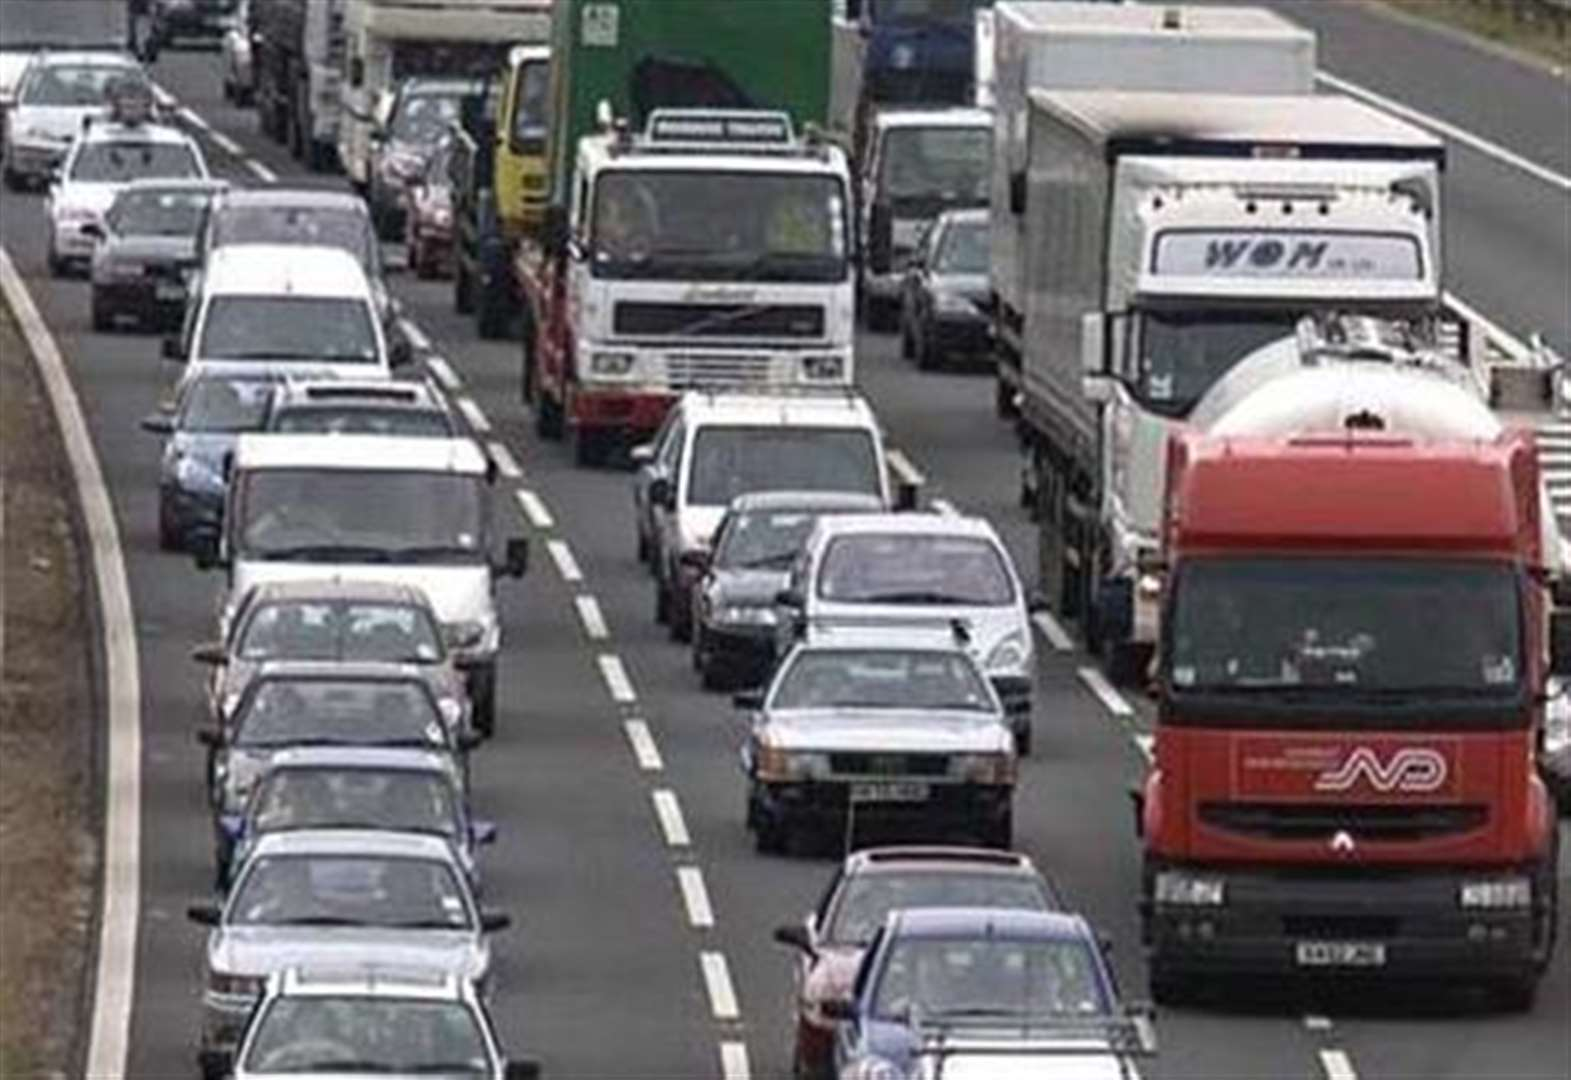 The worst roads for traffic jams revealed